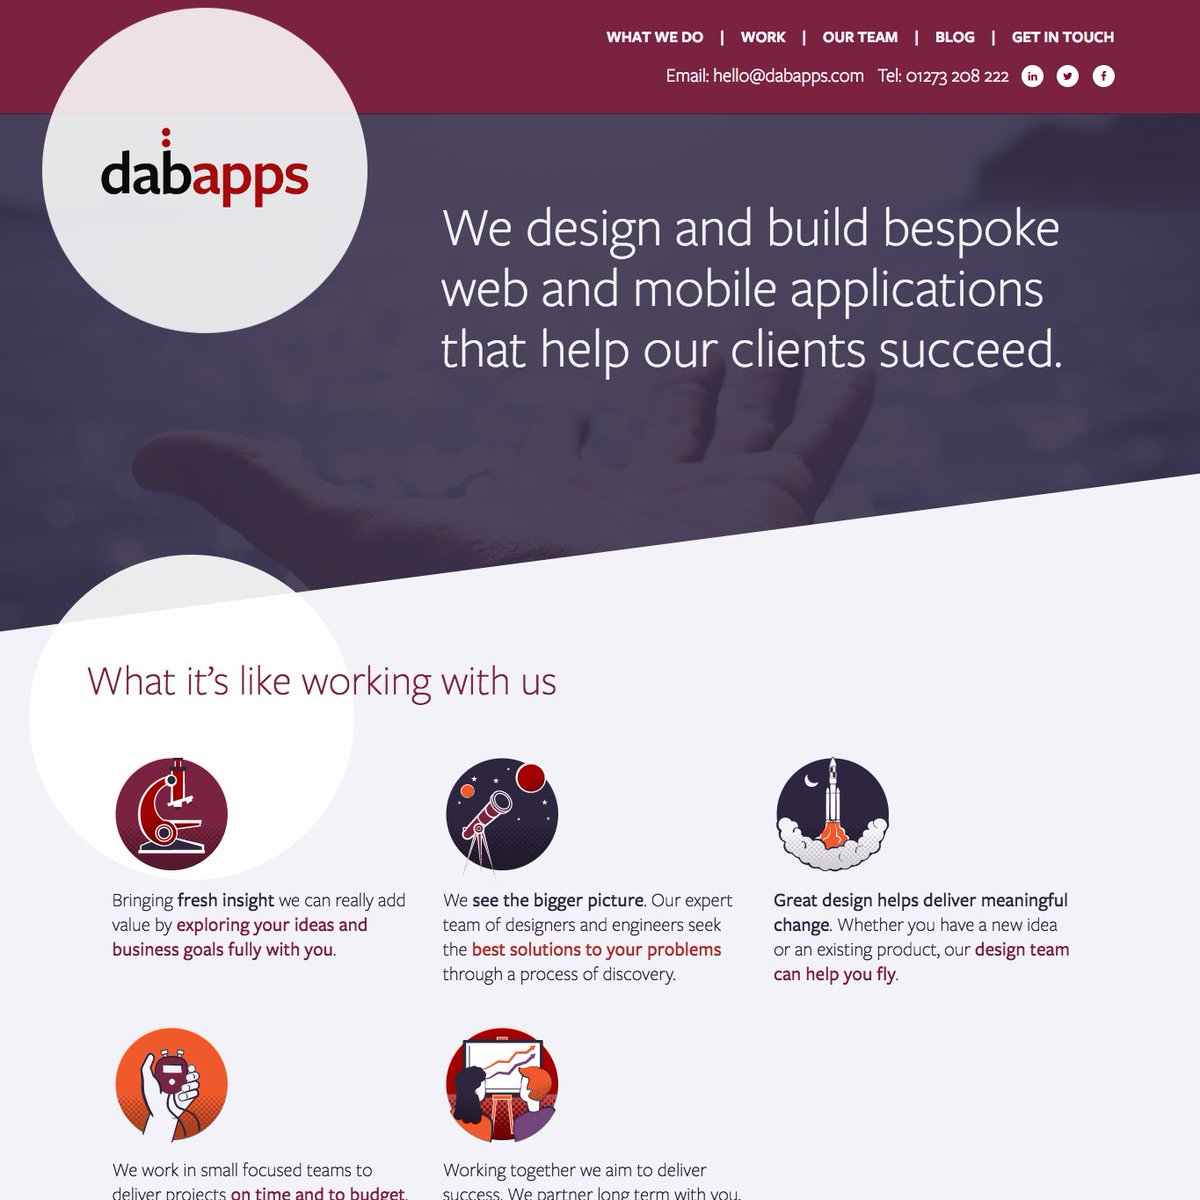 Check out our brand new website   http://www. dabapps.com  &nbsp;   #Brighton #softwaredevelopment #Apps #webapps #Software #designandbuild #dabapps<br>http://pic.twitter.com/7Z6jsdb7Za